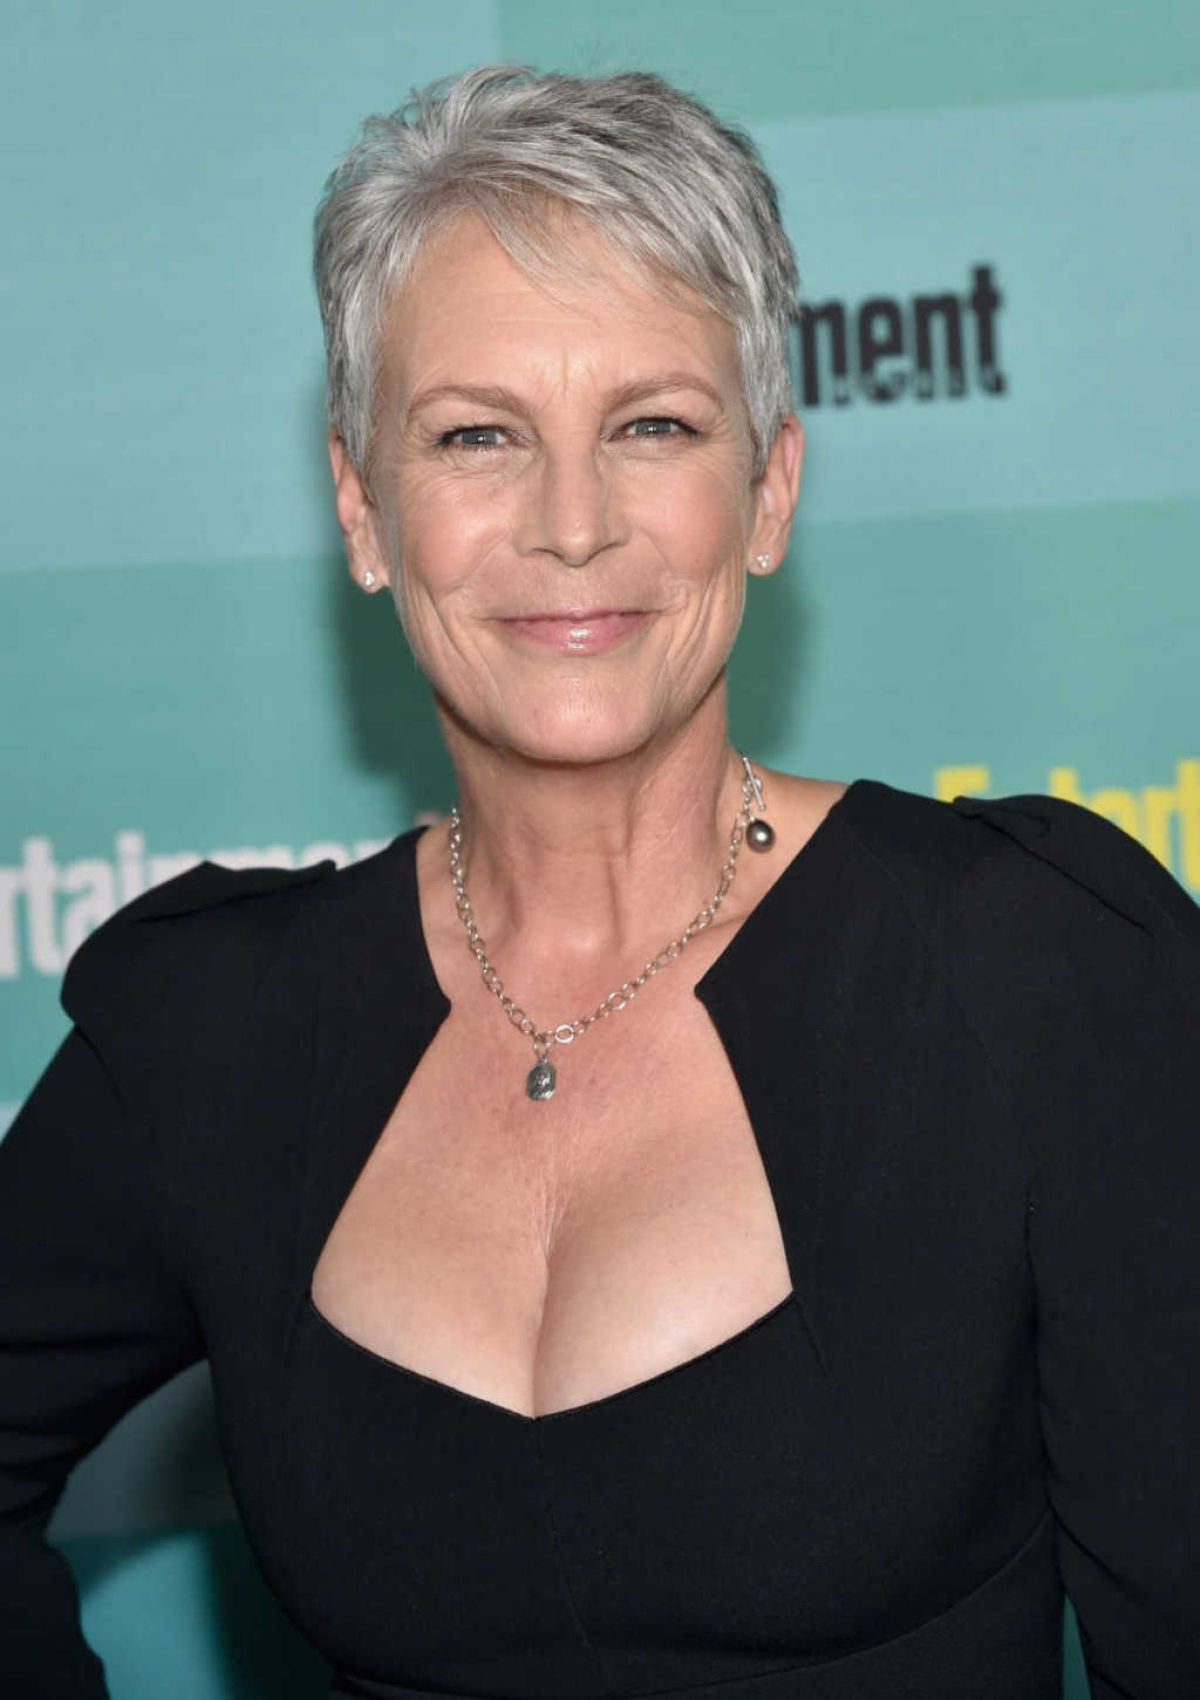 Jamie Lee Curtis At ET Weekly Annual Party - Celebzz - Celebzz